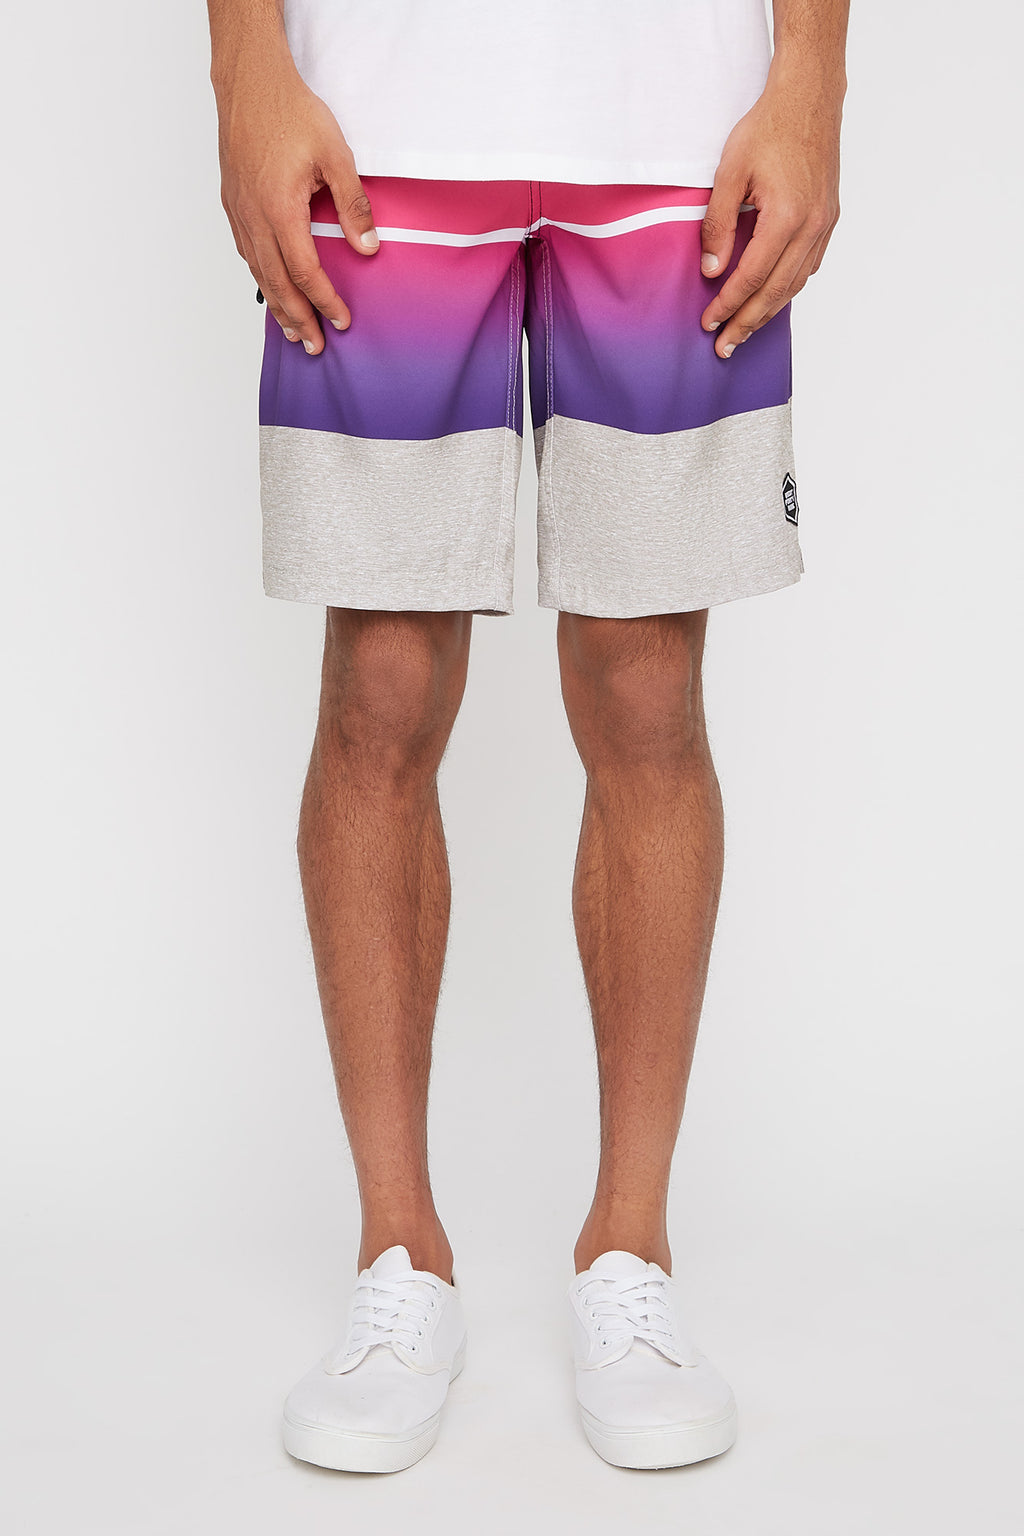 West49 Mens Striped Board Shorts